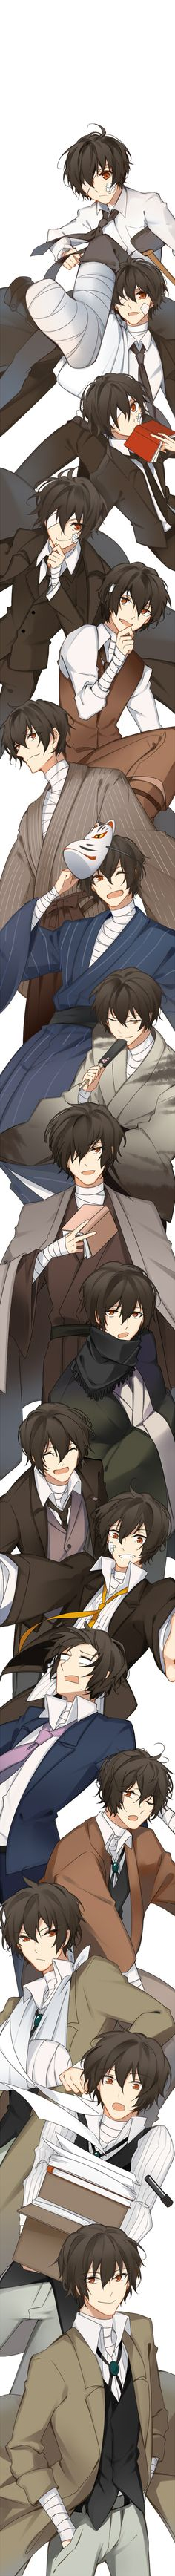 Dazai's transformation has been one of the most intriguing story in BSD. From the demon prodigy of Port Mafia, to the youngest executive ever, to a full time detective in ADA.